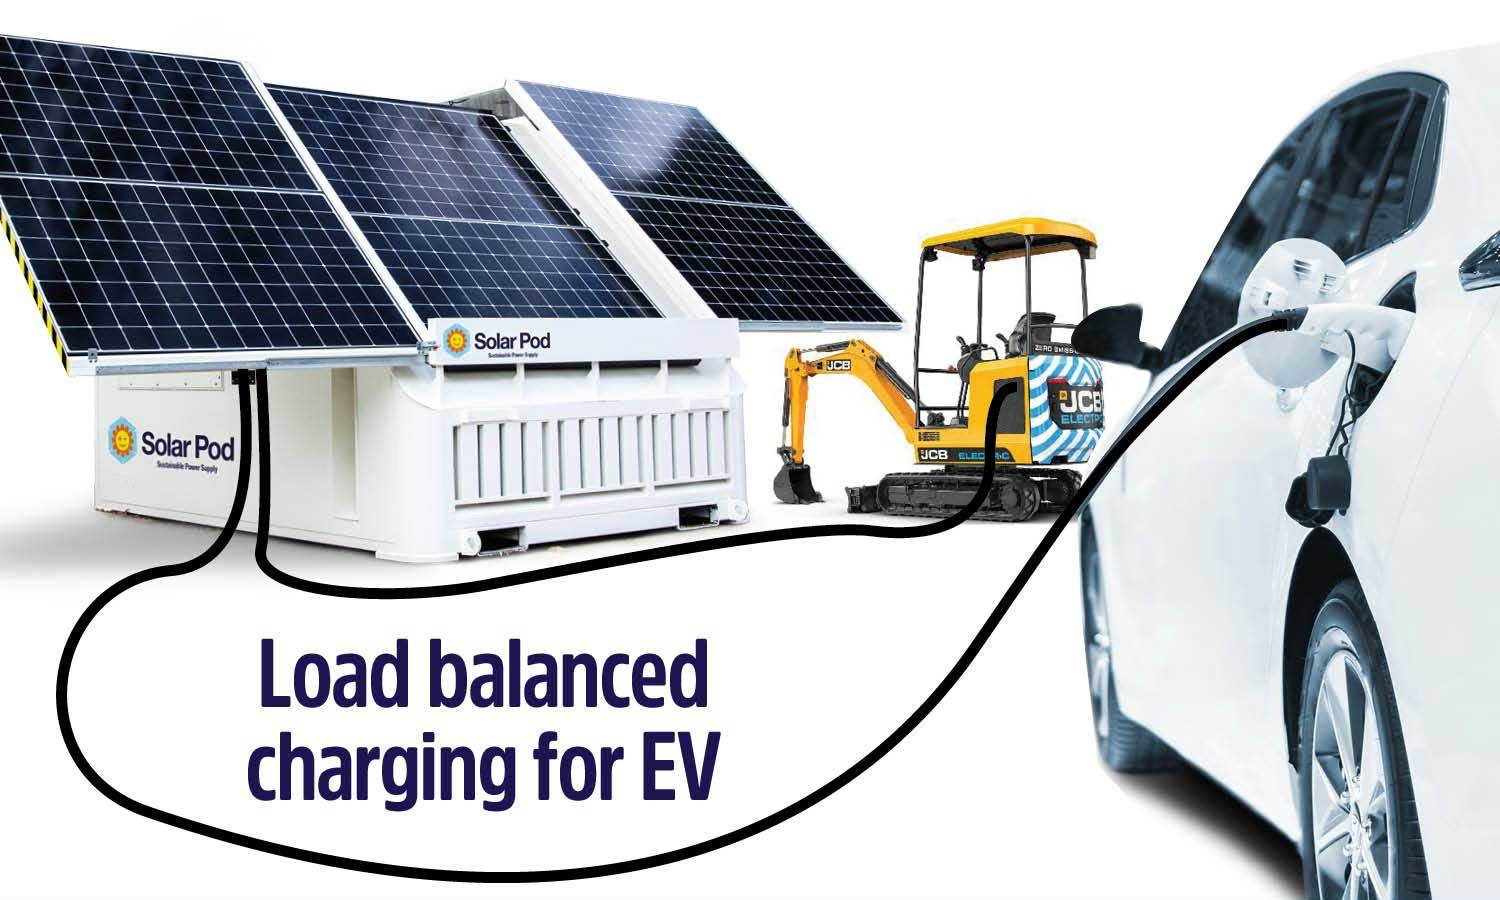 Solar Pod connected to excavator and electric vehicle for charging